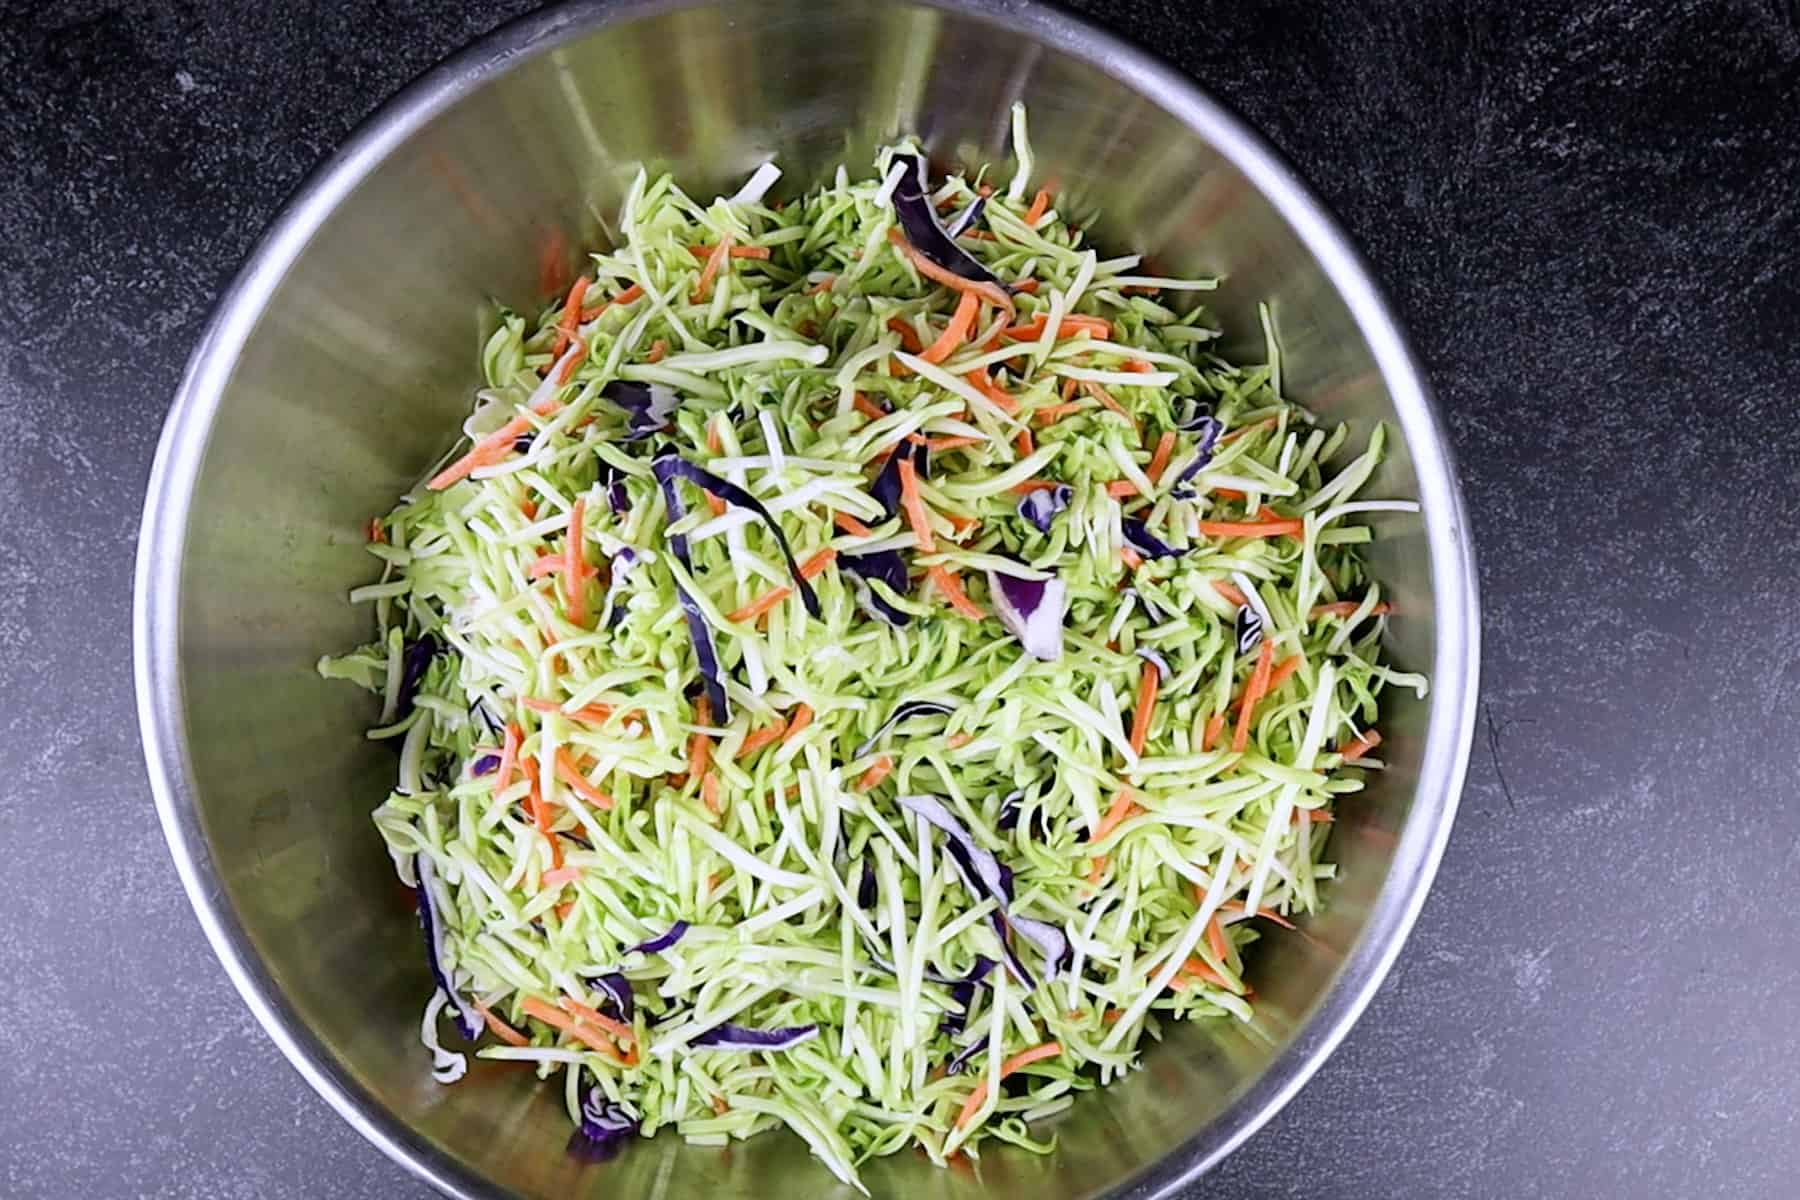 broccoli slaw and tricolor slaw mixed